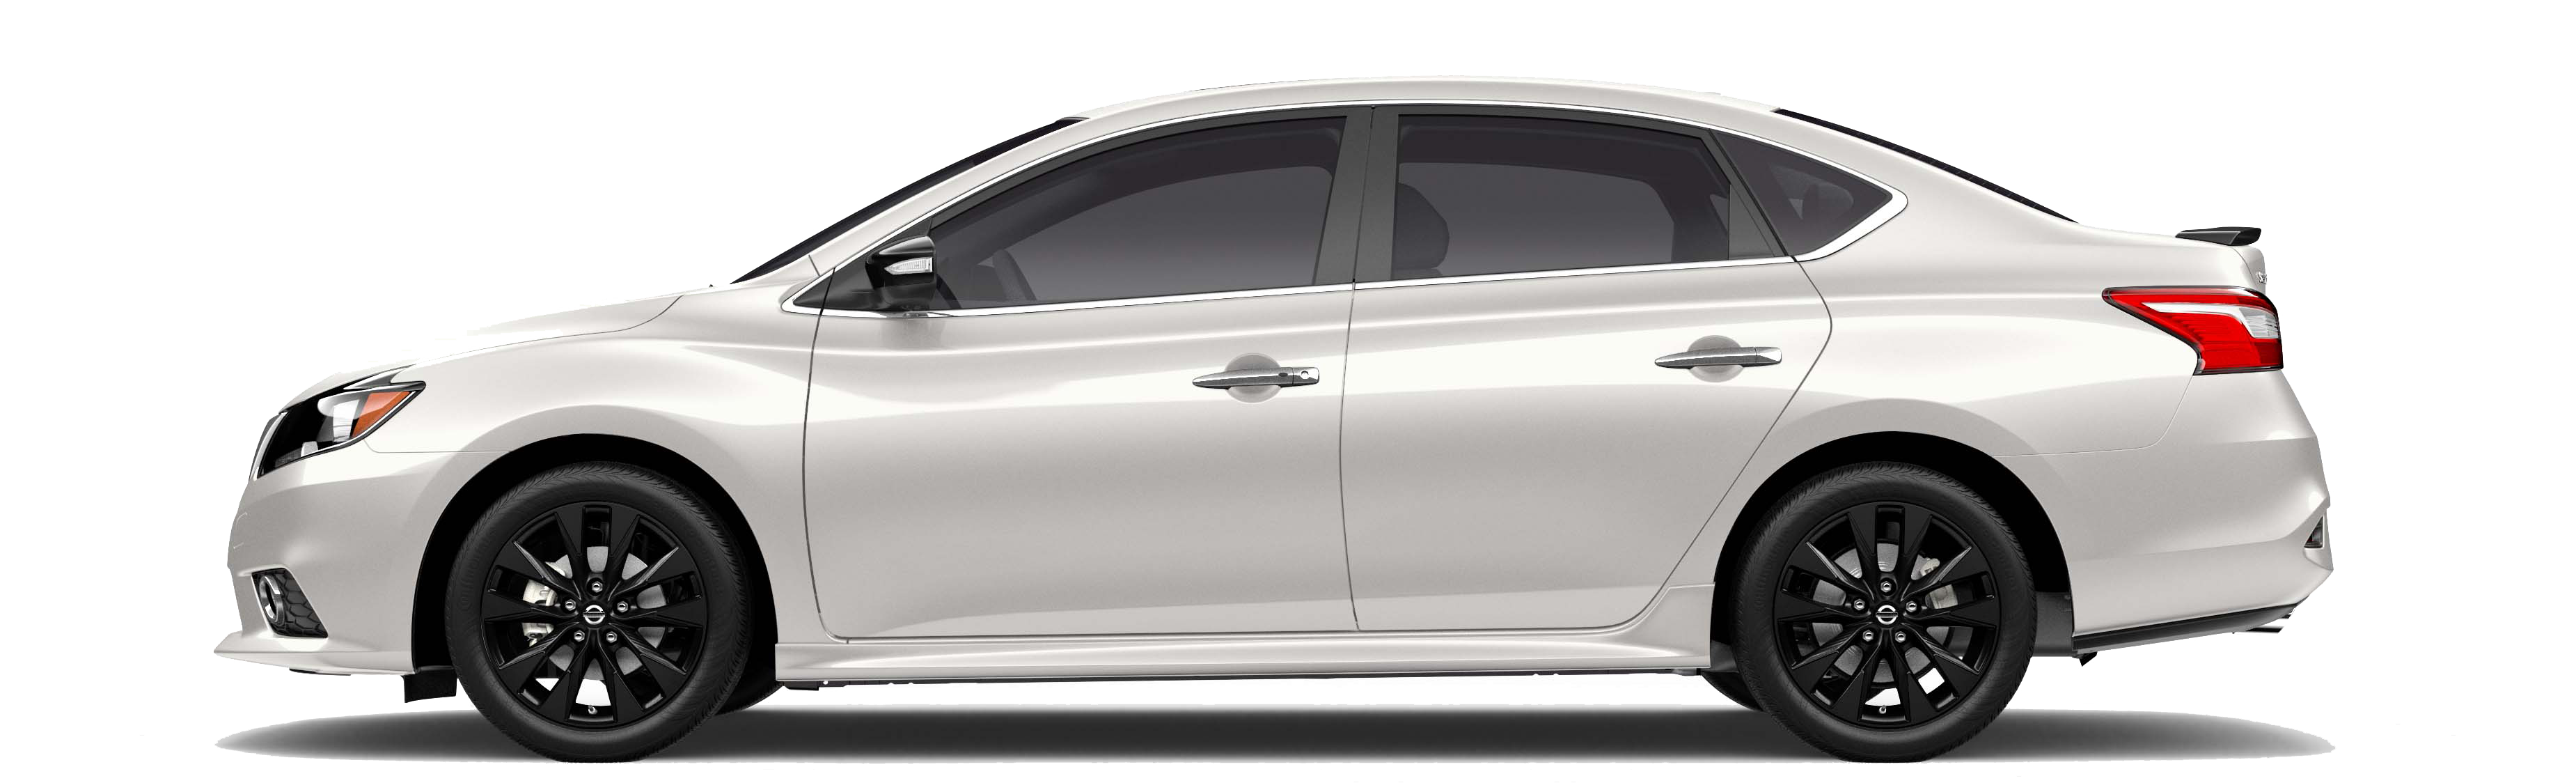 price sport moonroof incentives rogue awd offers dealers for oem prairie nissan new sale roof sl lease prices mn eden and rails original